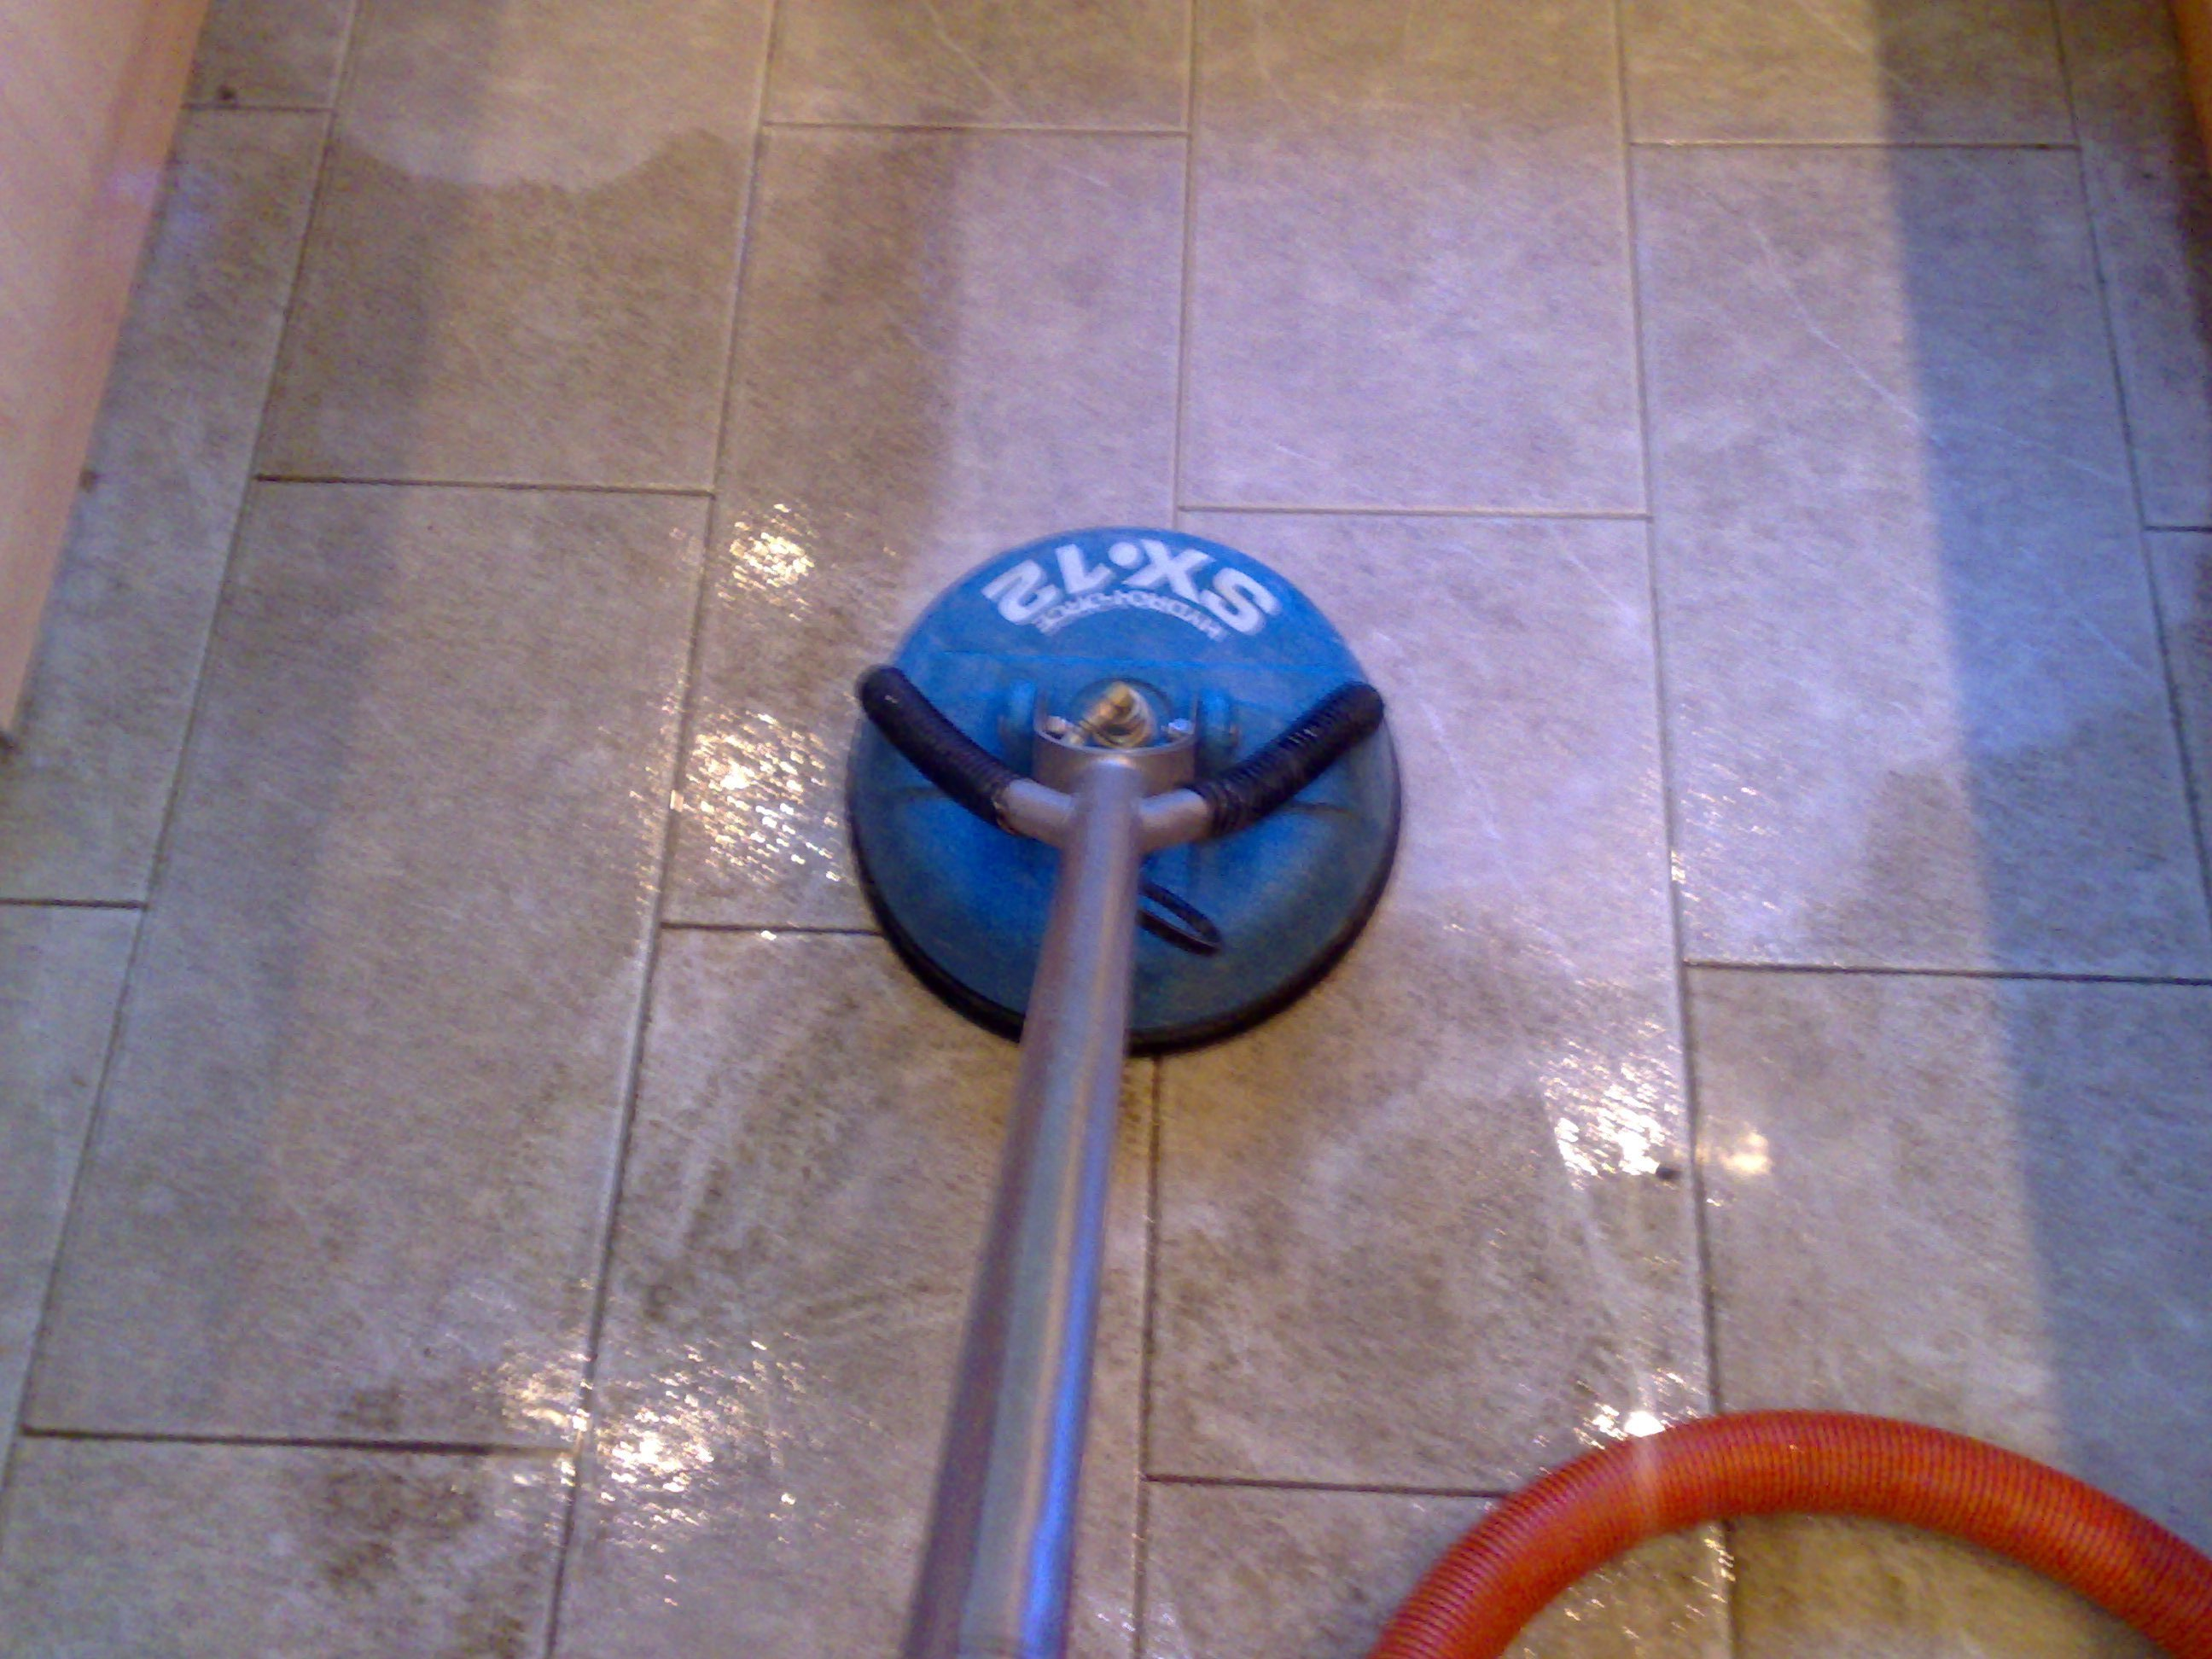 Tile and grout cleaning tile and grout cleaning in monks eleigh dailygadgetfo Images